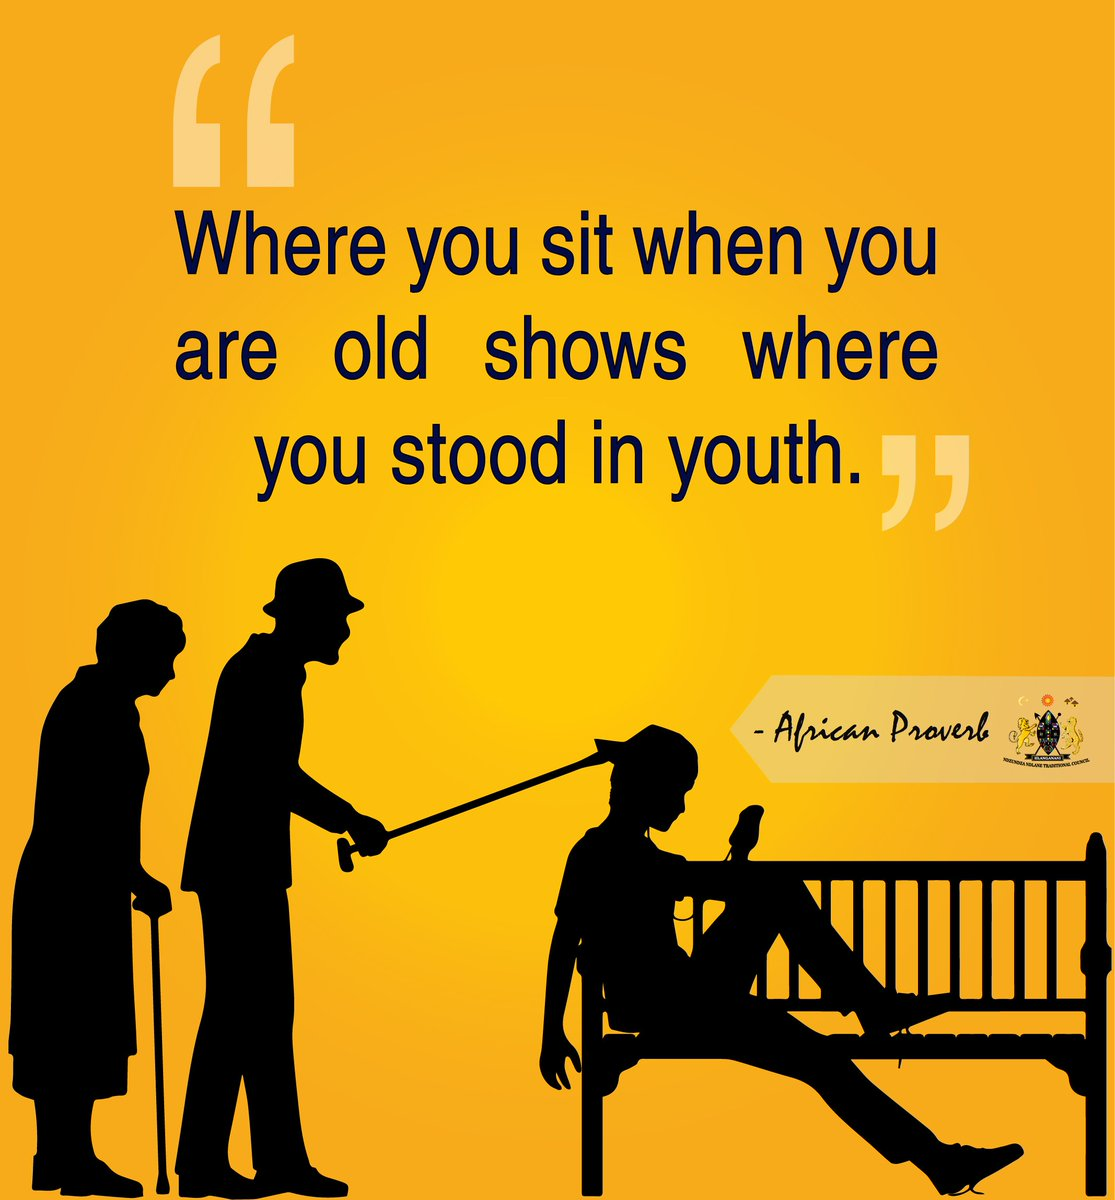 Where you sit when you are old shows where you stood in youth @AfricanProvrbs   #motivationalquote <br>http://pic.twitter.com/UNCzsR1lbm